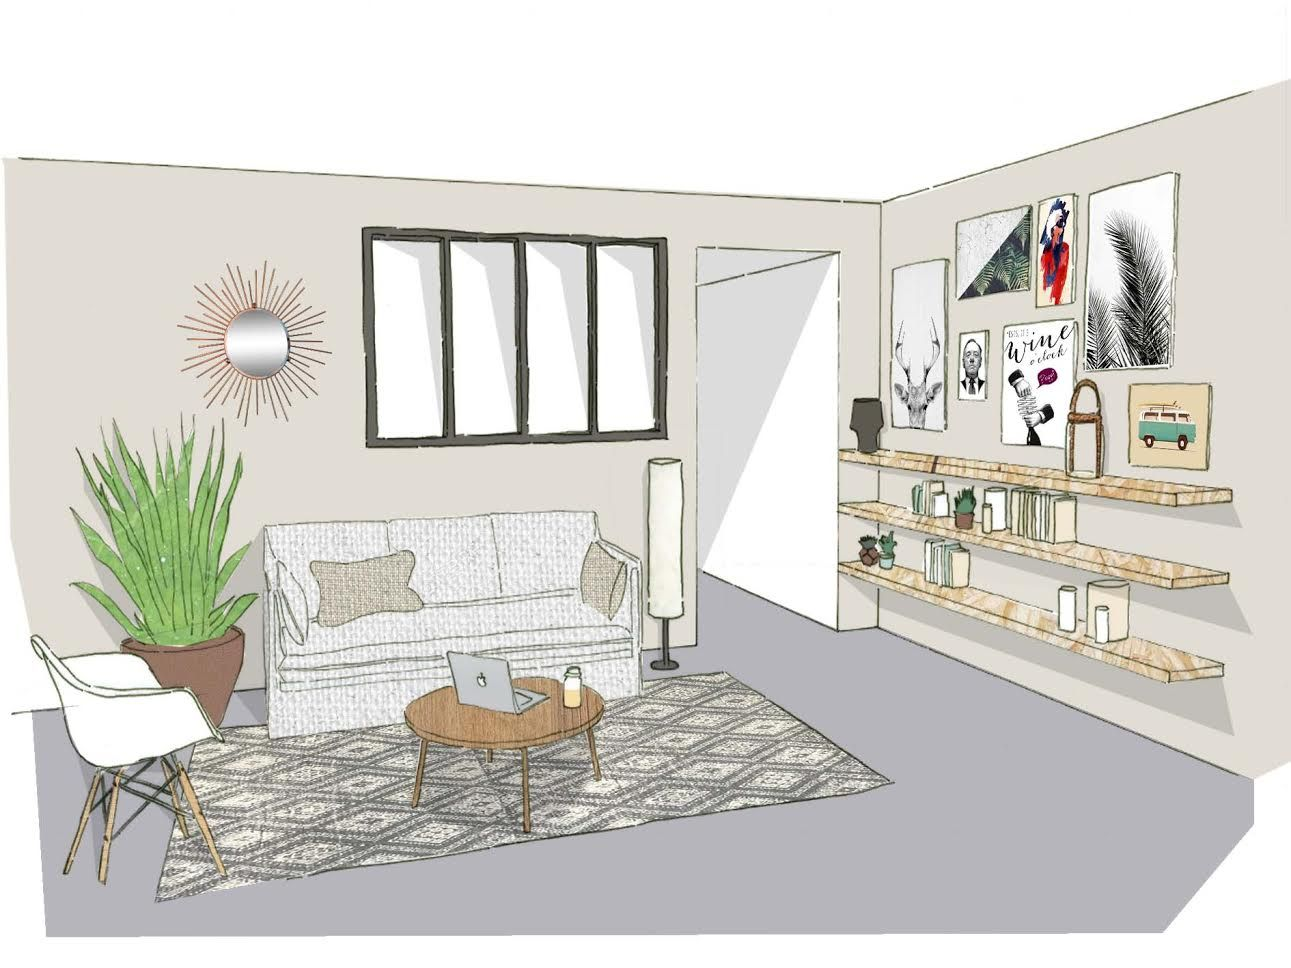 Projet salon naturel architecte projet sketch dessin for Dessin architecture interieur